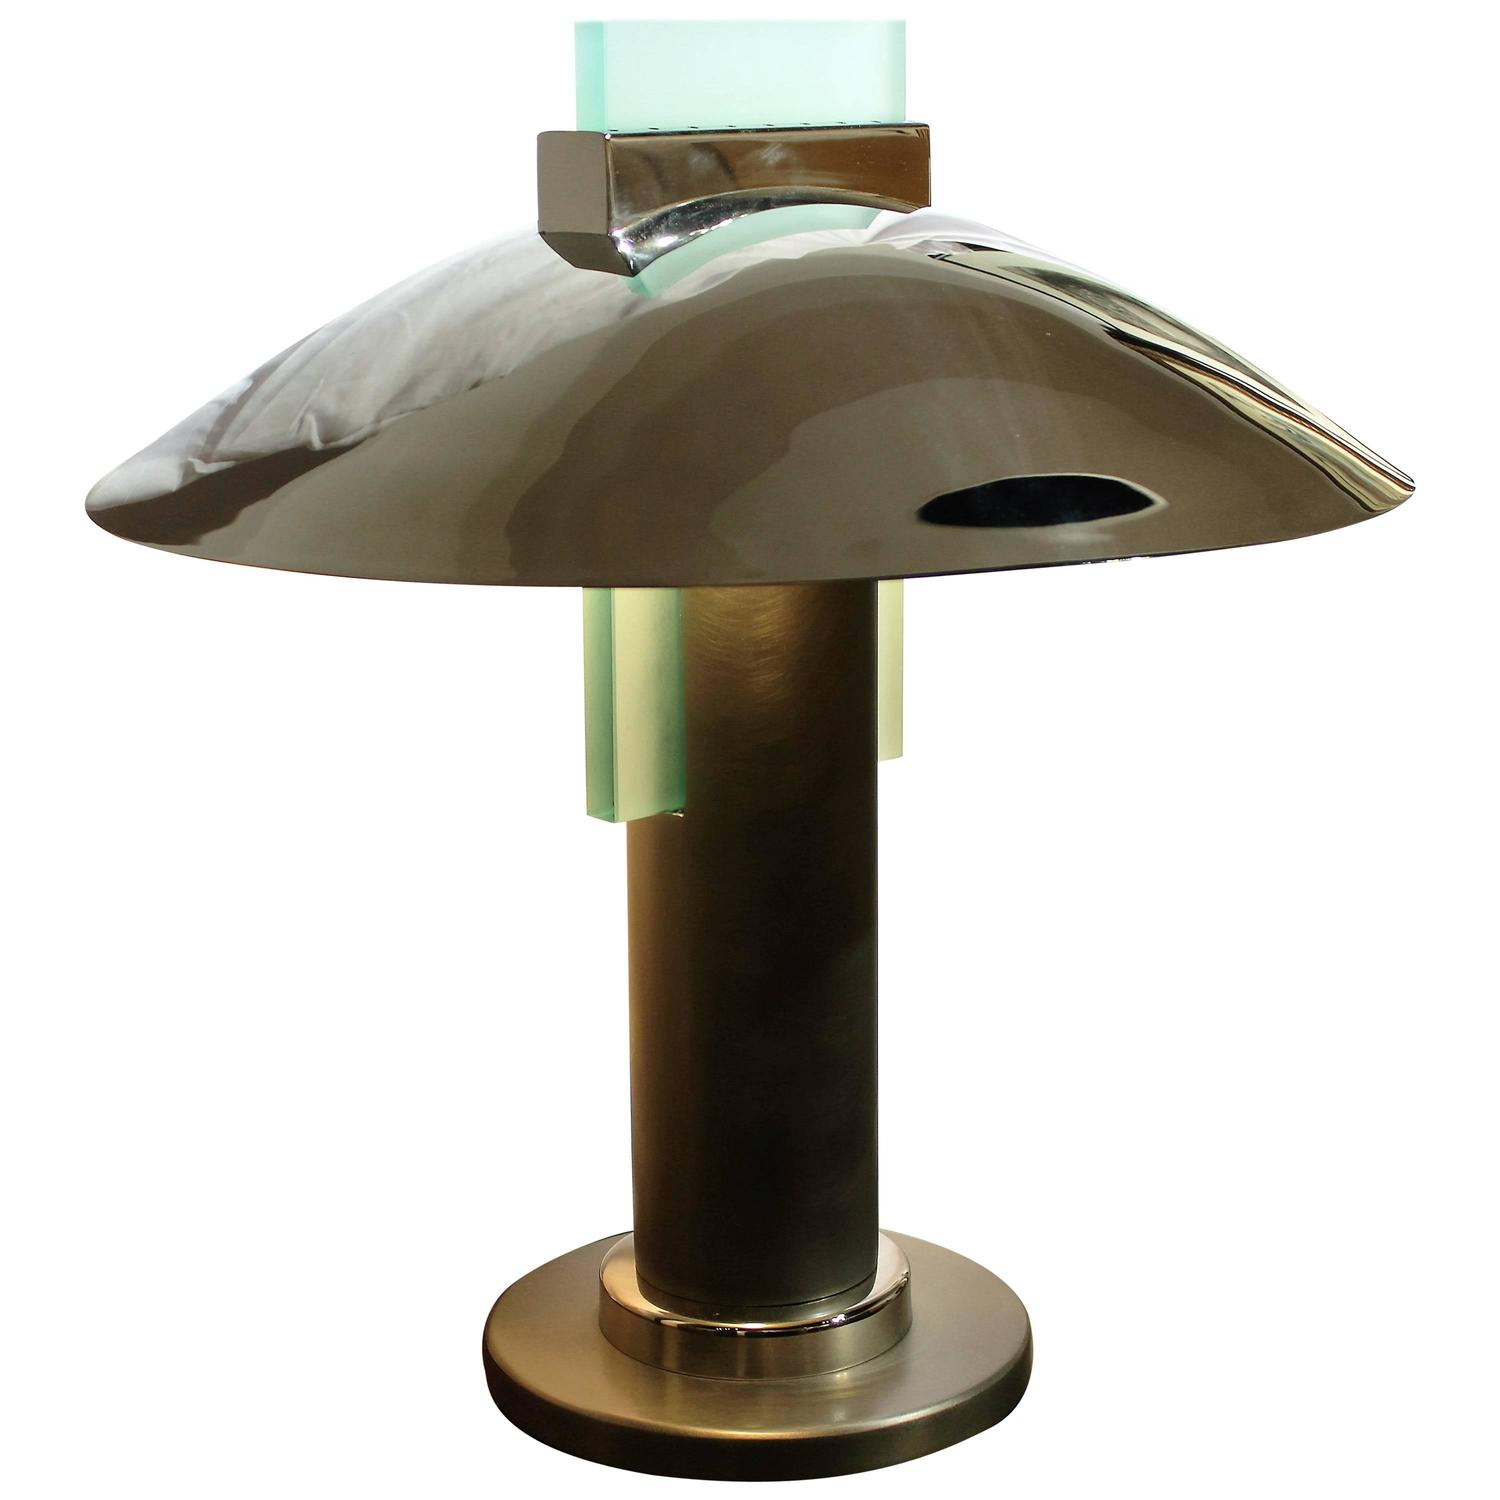 20th century art deco style stainless steel table lamp. Black Bedroom Furniture Sets. Home Design Ideas